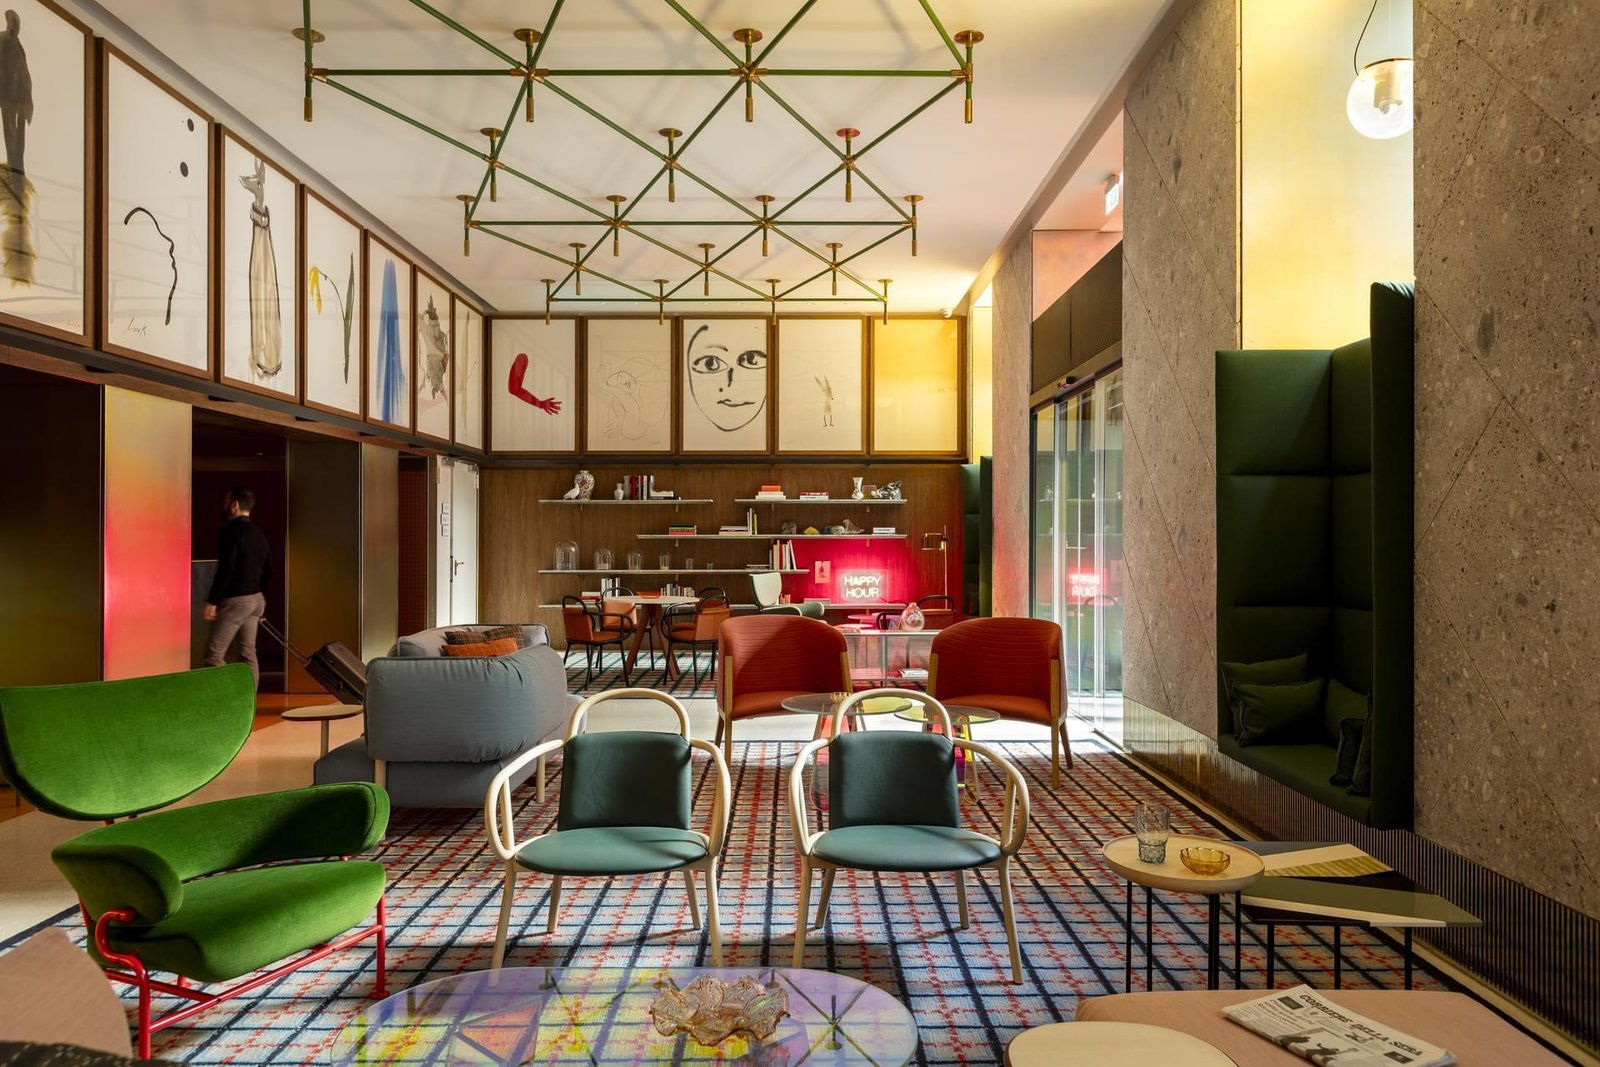 Room Mate Giulia Hotel by Patricia Urquiola in Milan. Courtesy of Room Mate Giulia Hotel.  Hospitality Favorites